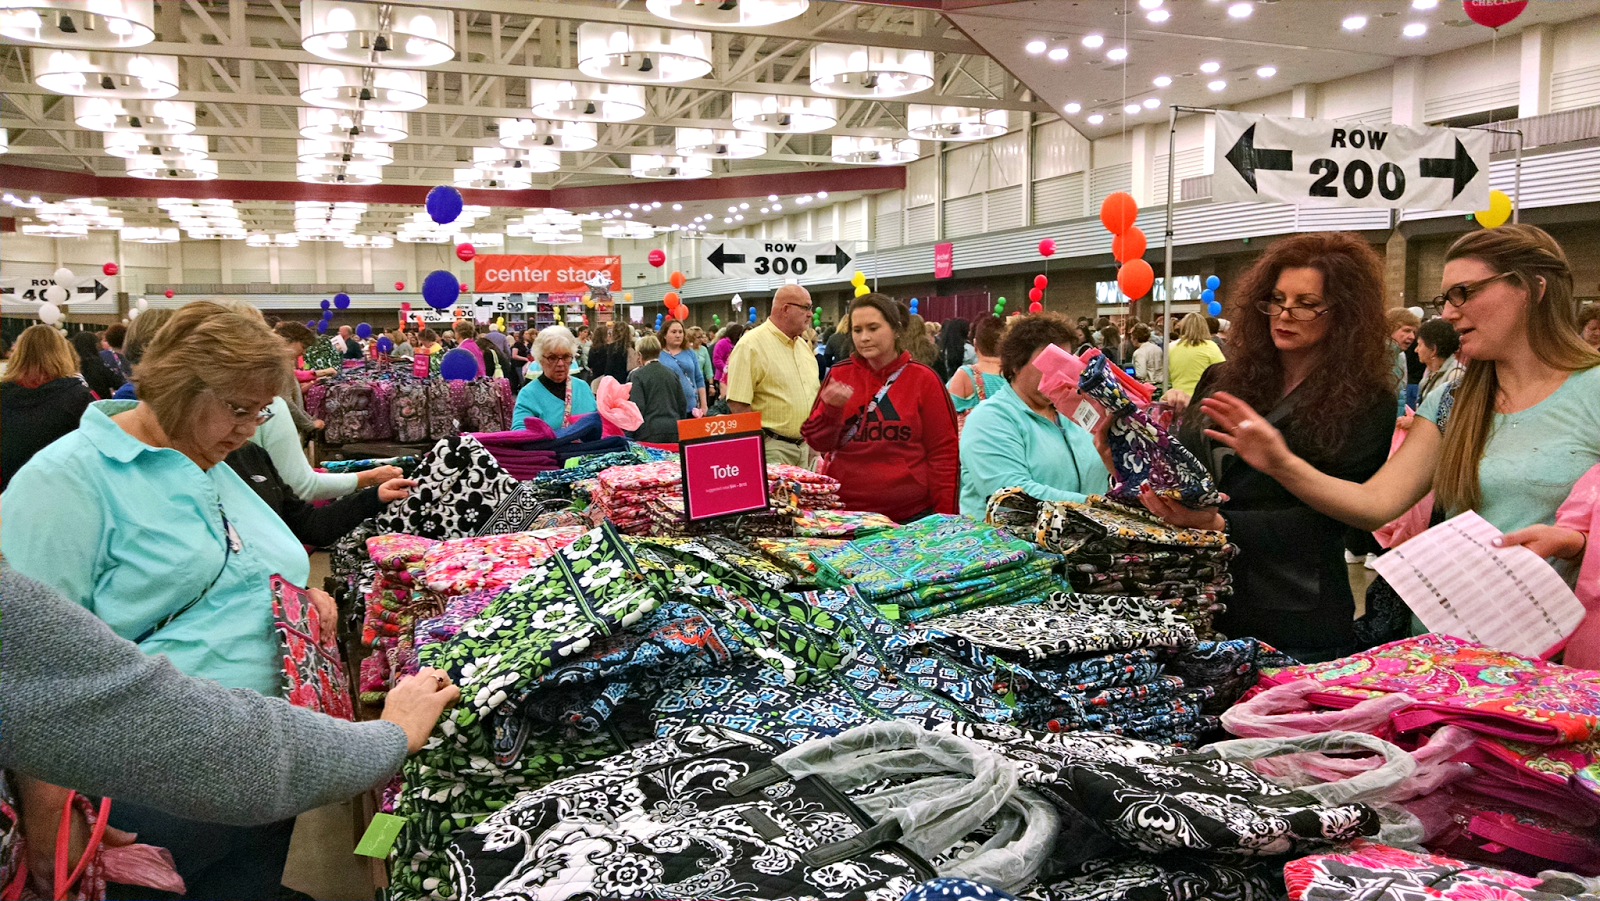 bfcbe28fe5ab The Vera Bradley Annual Outlet sale is held every year in Fort Wayne